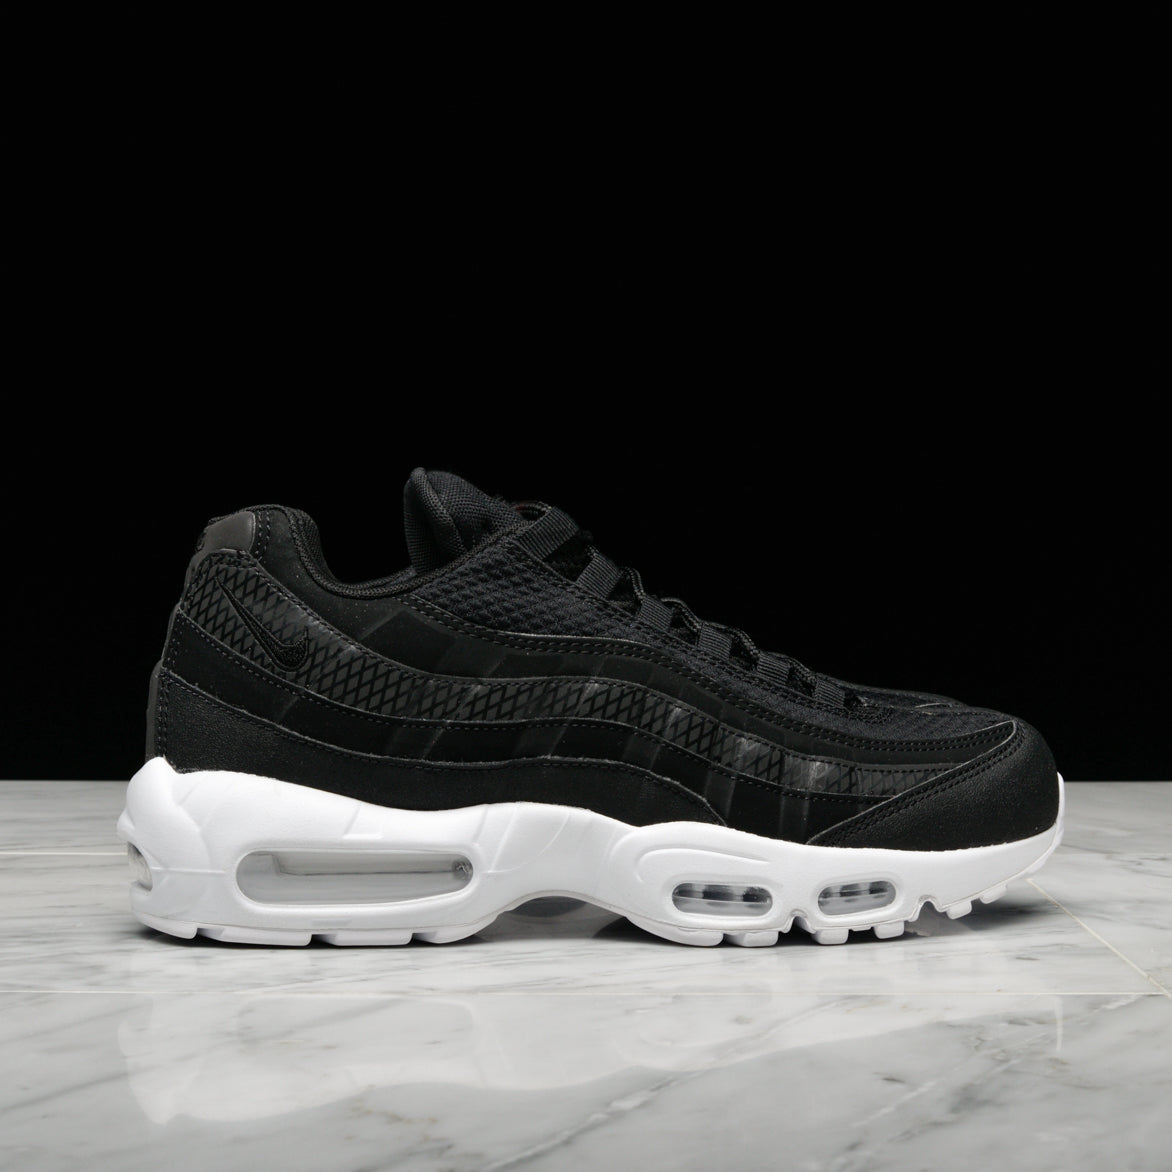 best service 47317 ad99e AIR MAX 95 PREMIUM SE - BLACK   WHITE   TEAM ORANGE   lapstoneandhammer.com